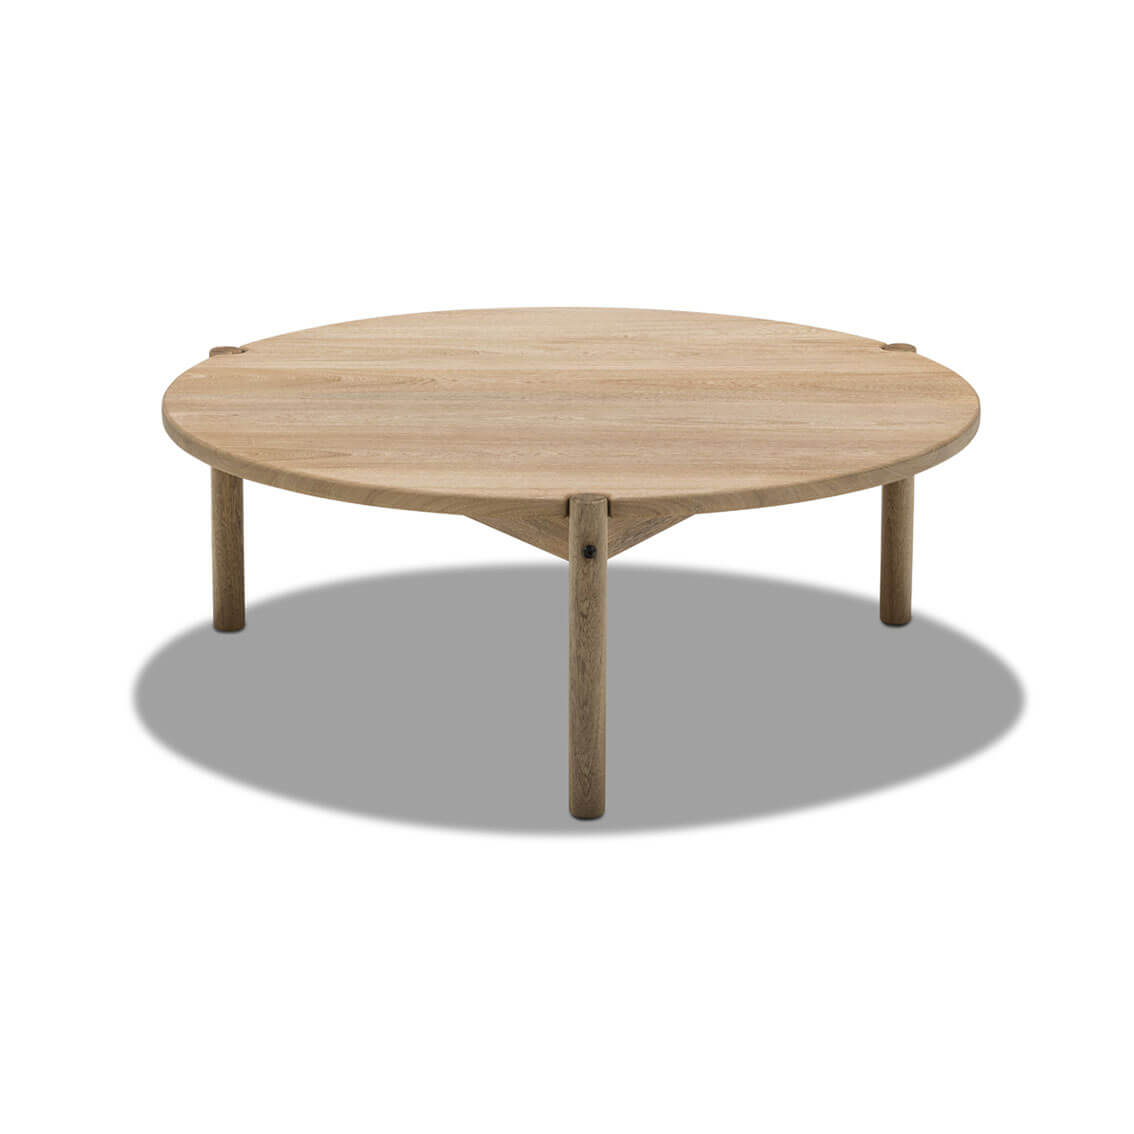 Lola Coffee Table With Storage: Irene Round Coffee Table